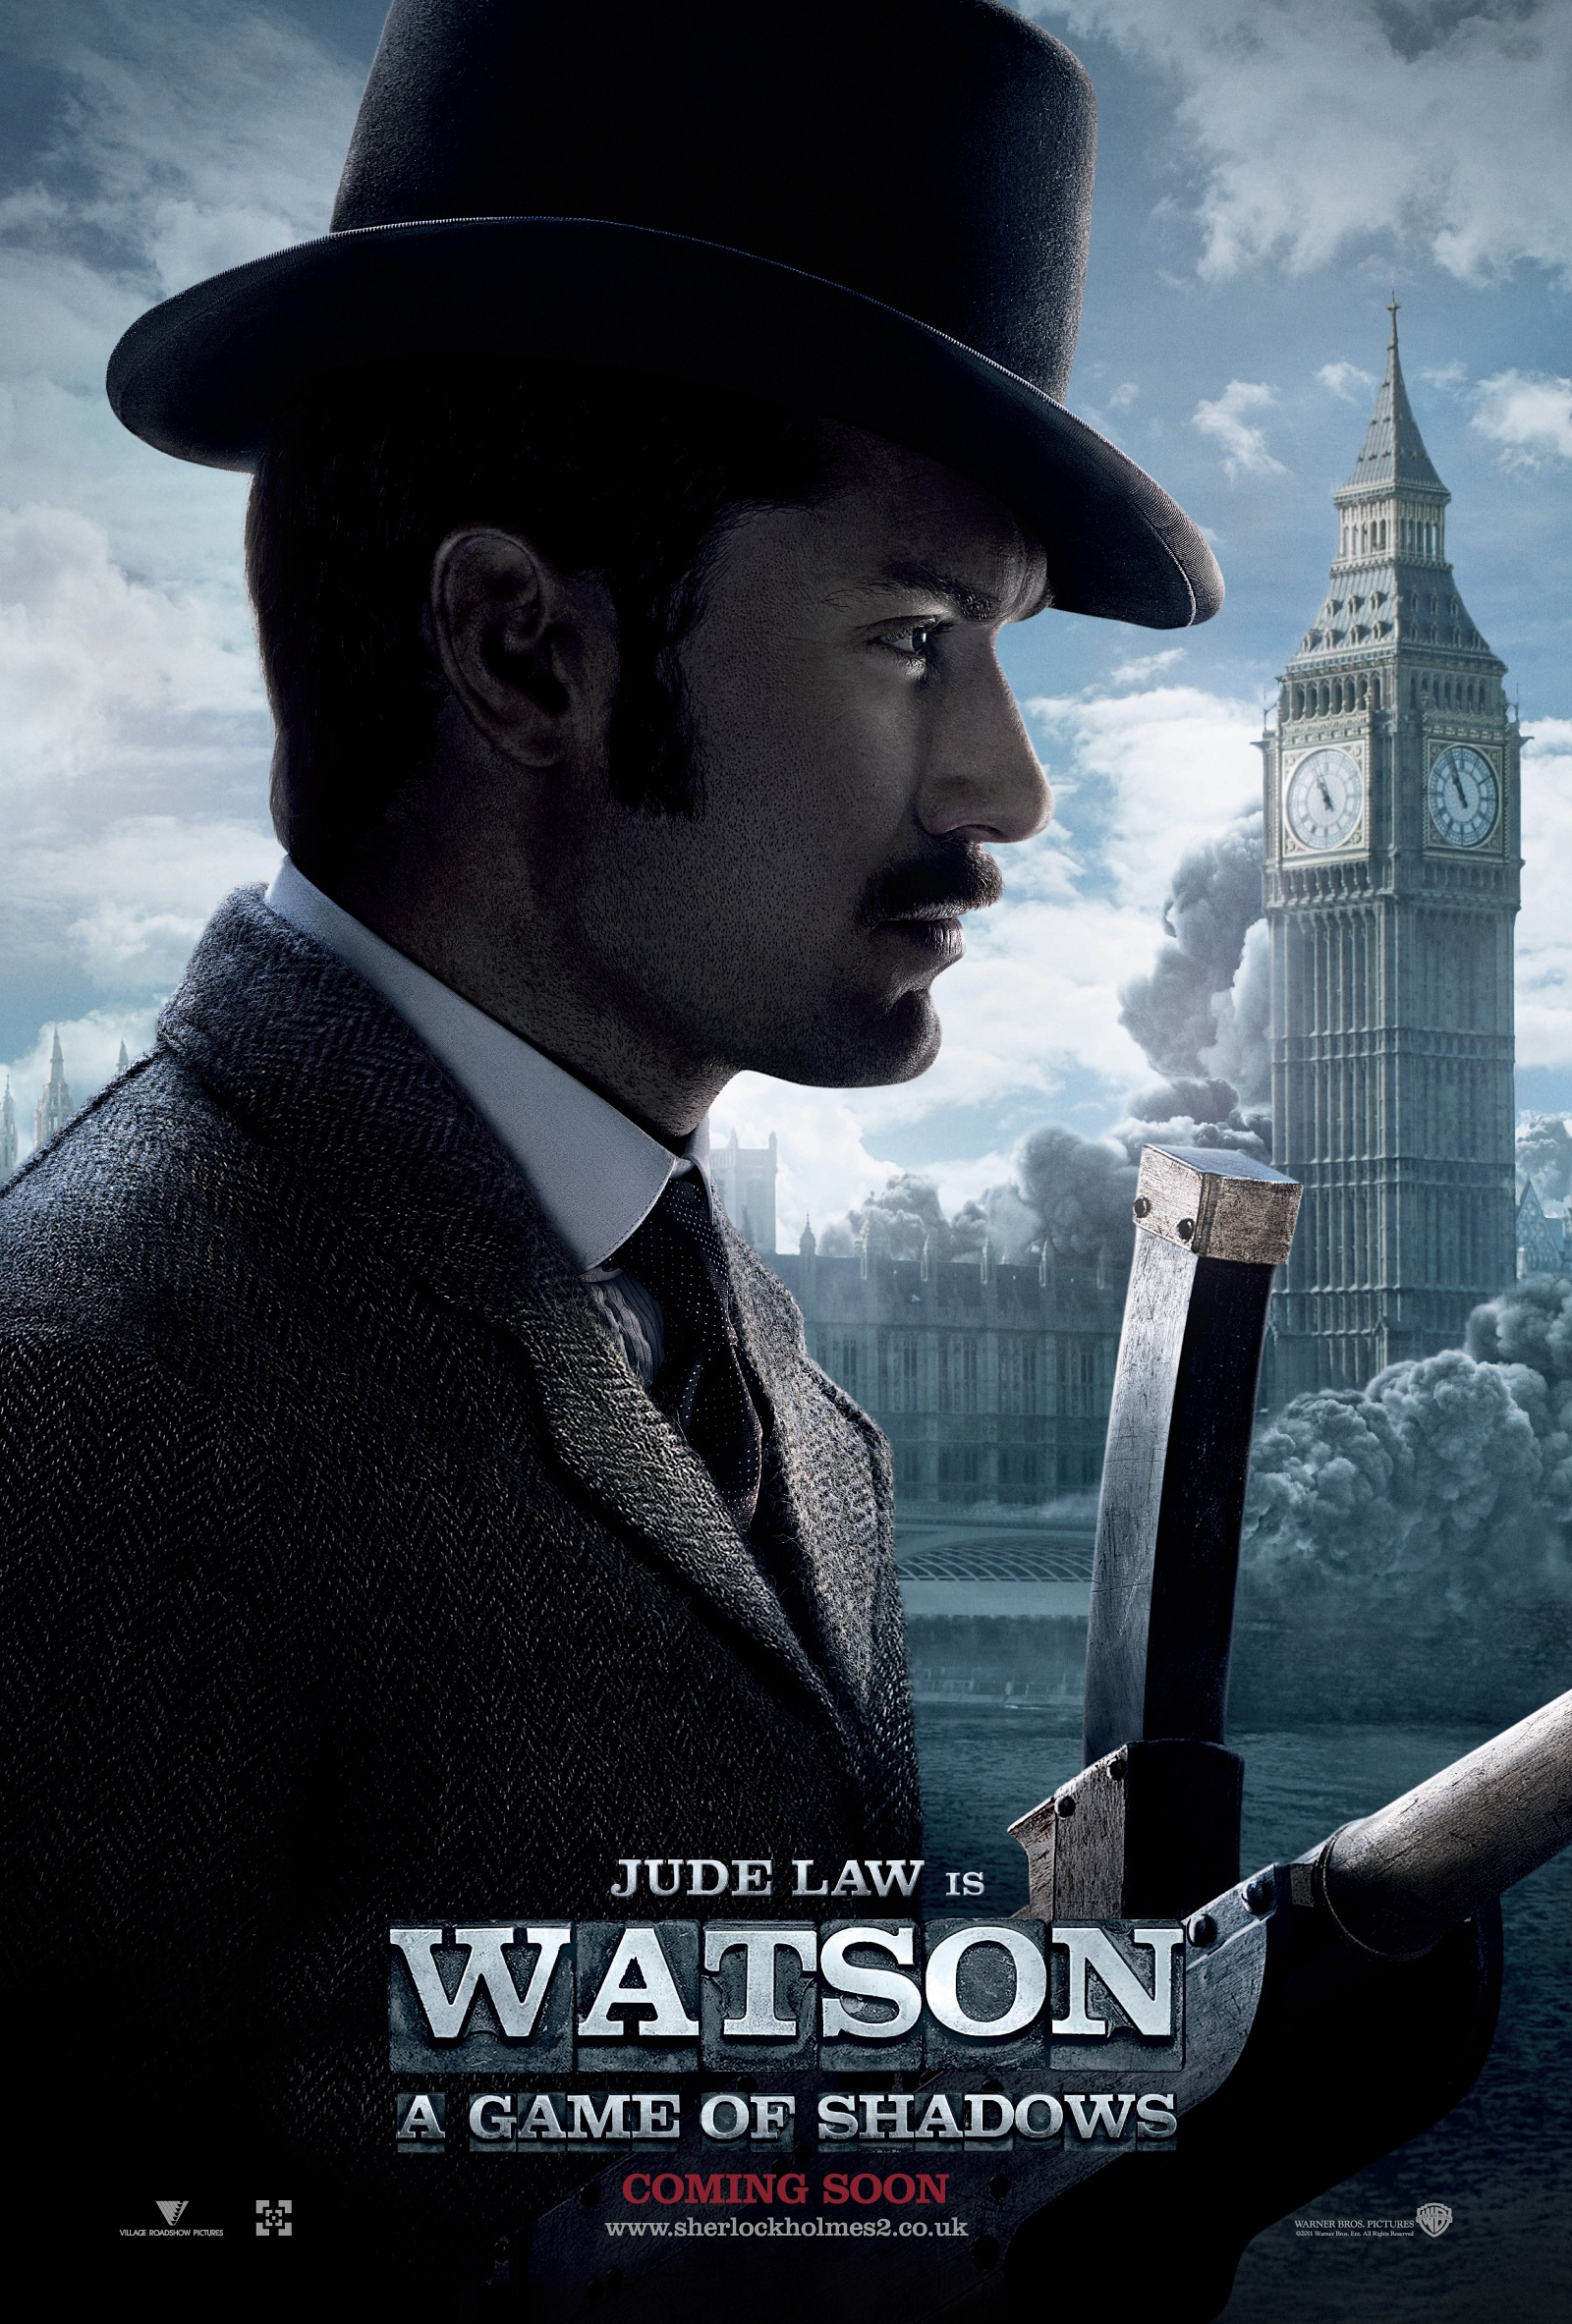 New trailer and posters for Sherlock Holmes: A Game of Shadows